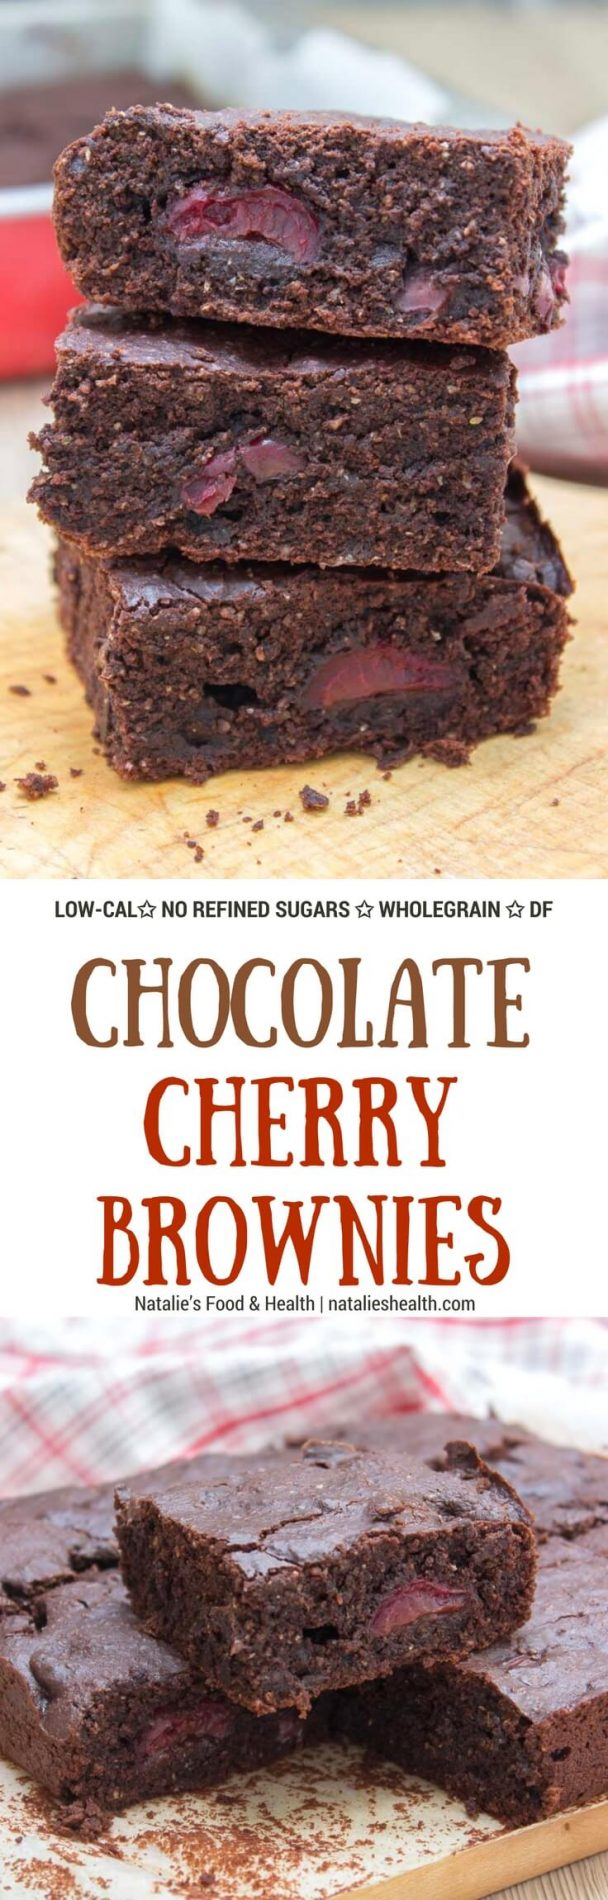 Rich, decadent, and chocolatey, these refined sugar-free Dark Chocolate Cherry Brownies are destined to delight you. Made with all HEALTHY ingredients, loaded with dark chocolate and sweet cherries, these brownies are truly a chocolate lover's dream! #healthy #wholegrain #sugarfree #chocolate #cherry #lowcalorie #dairyfree#summer #whole30 #weightloss | natalieshealth.com